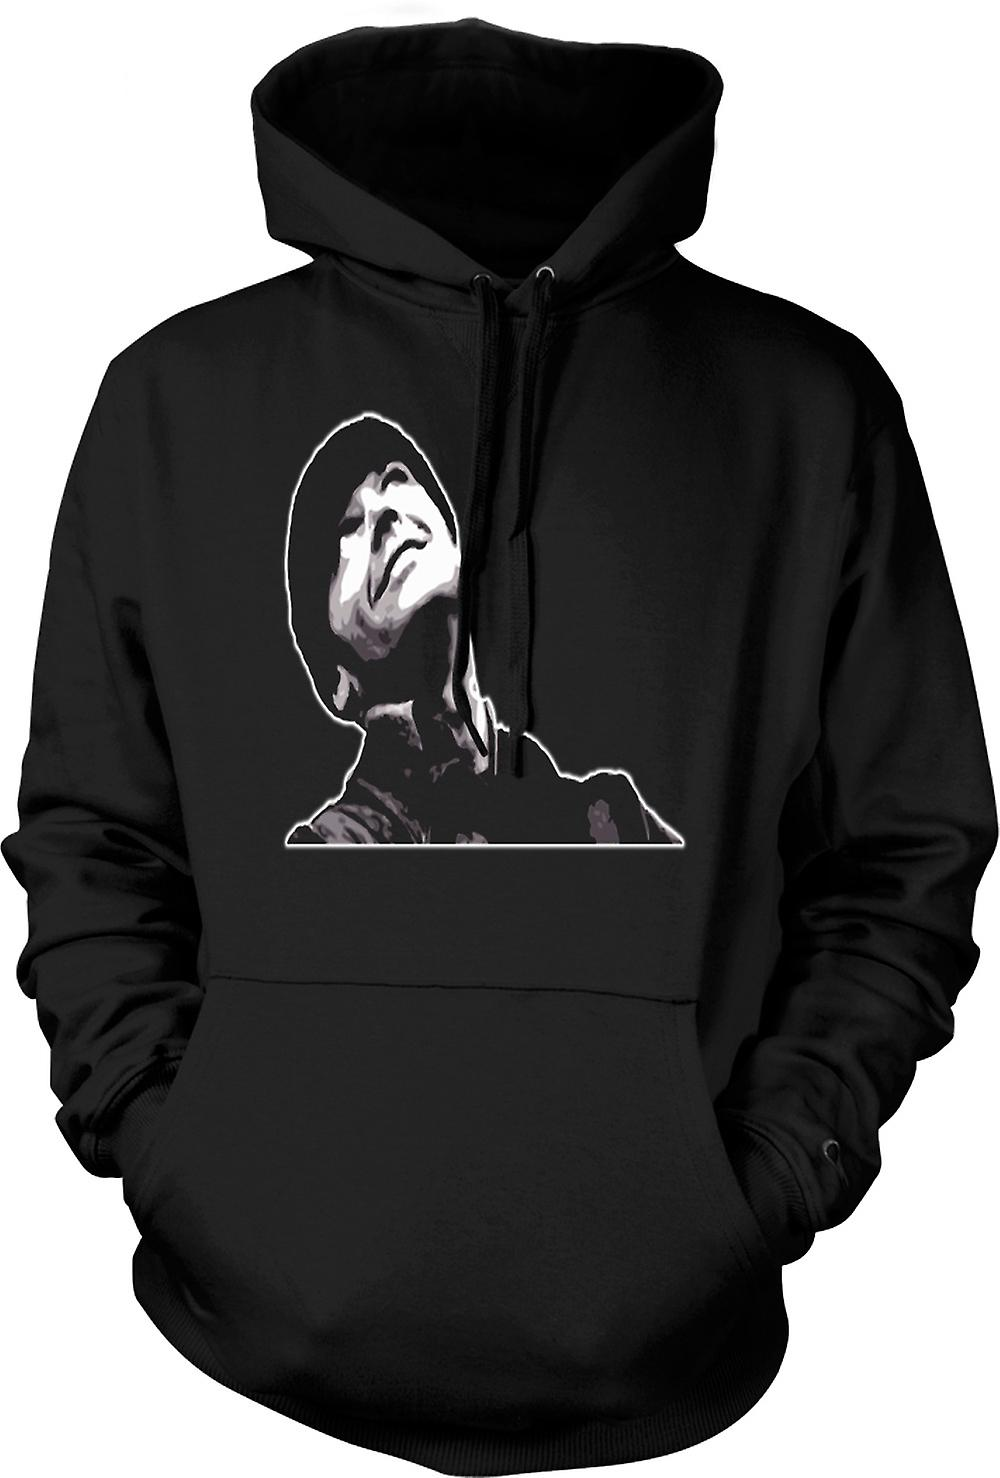 Mens Hoodie - One Flew Over Cuckoo's Nest - Jack Nicholson